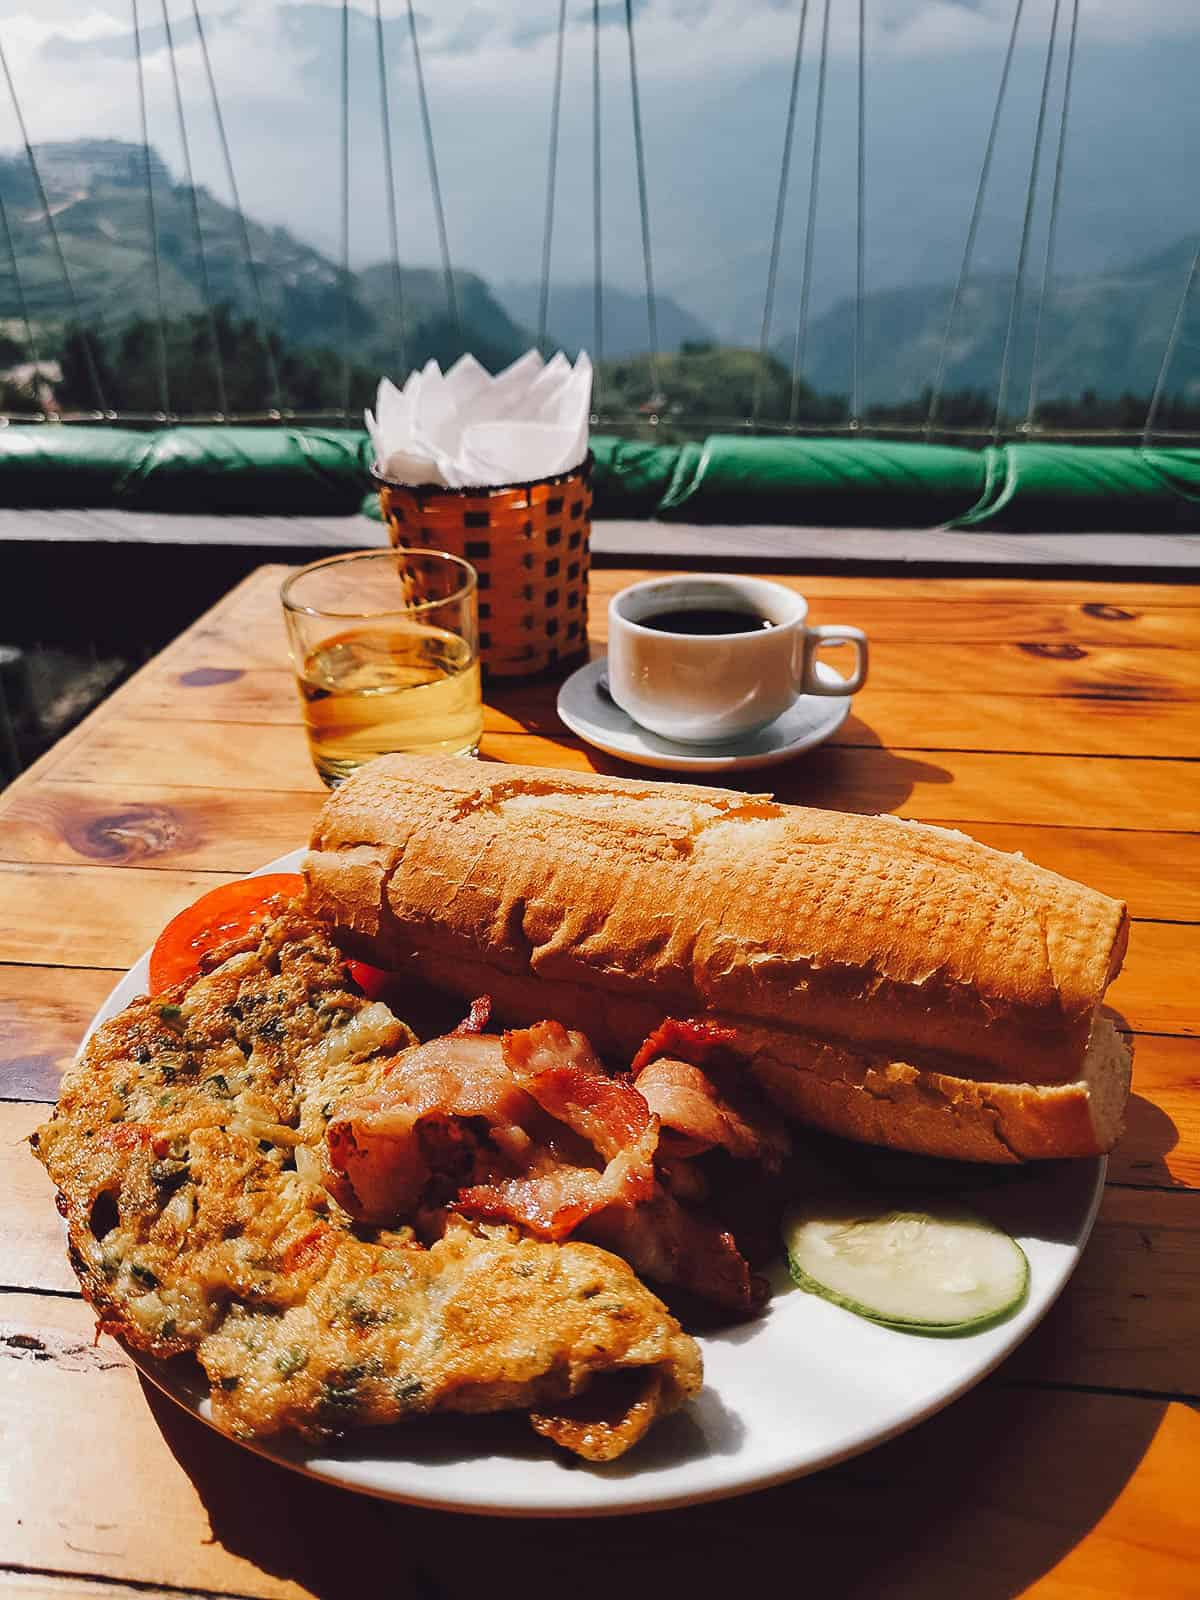 Breakfast in Sapa, Vietnam